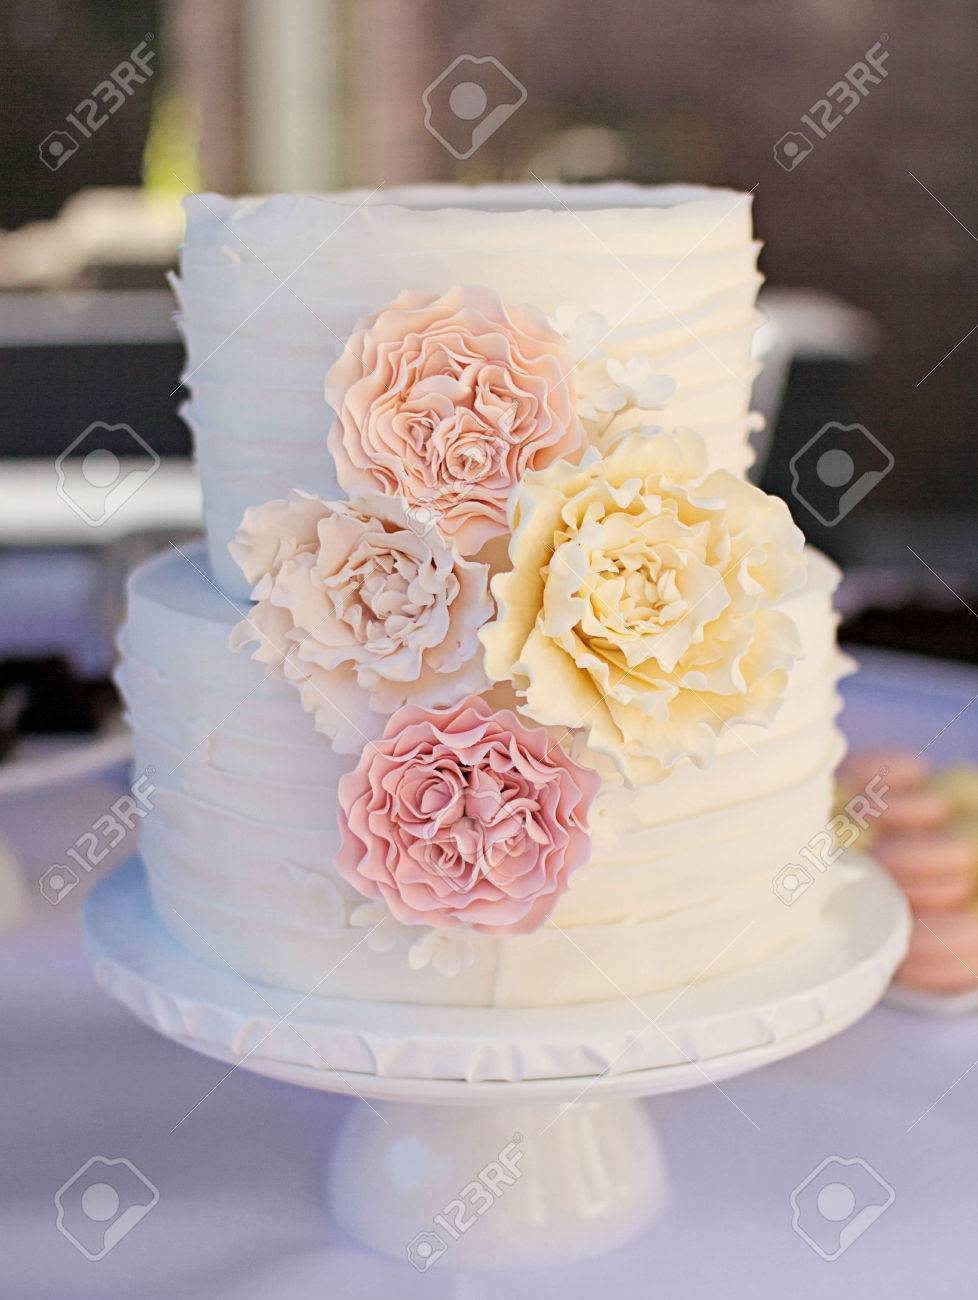 Beautiful white cake with pink and yellow flowers stock photo beautiful white cake with pink and yellow flowers stock photo 73659803 mightylinksfo